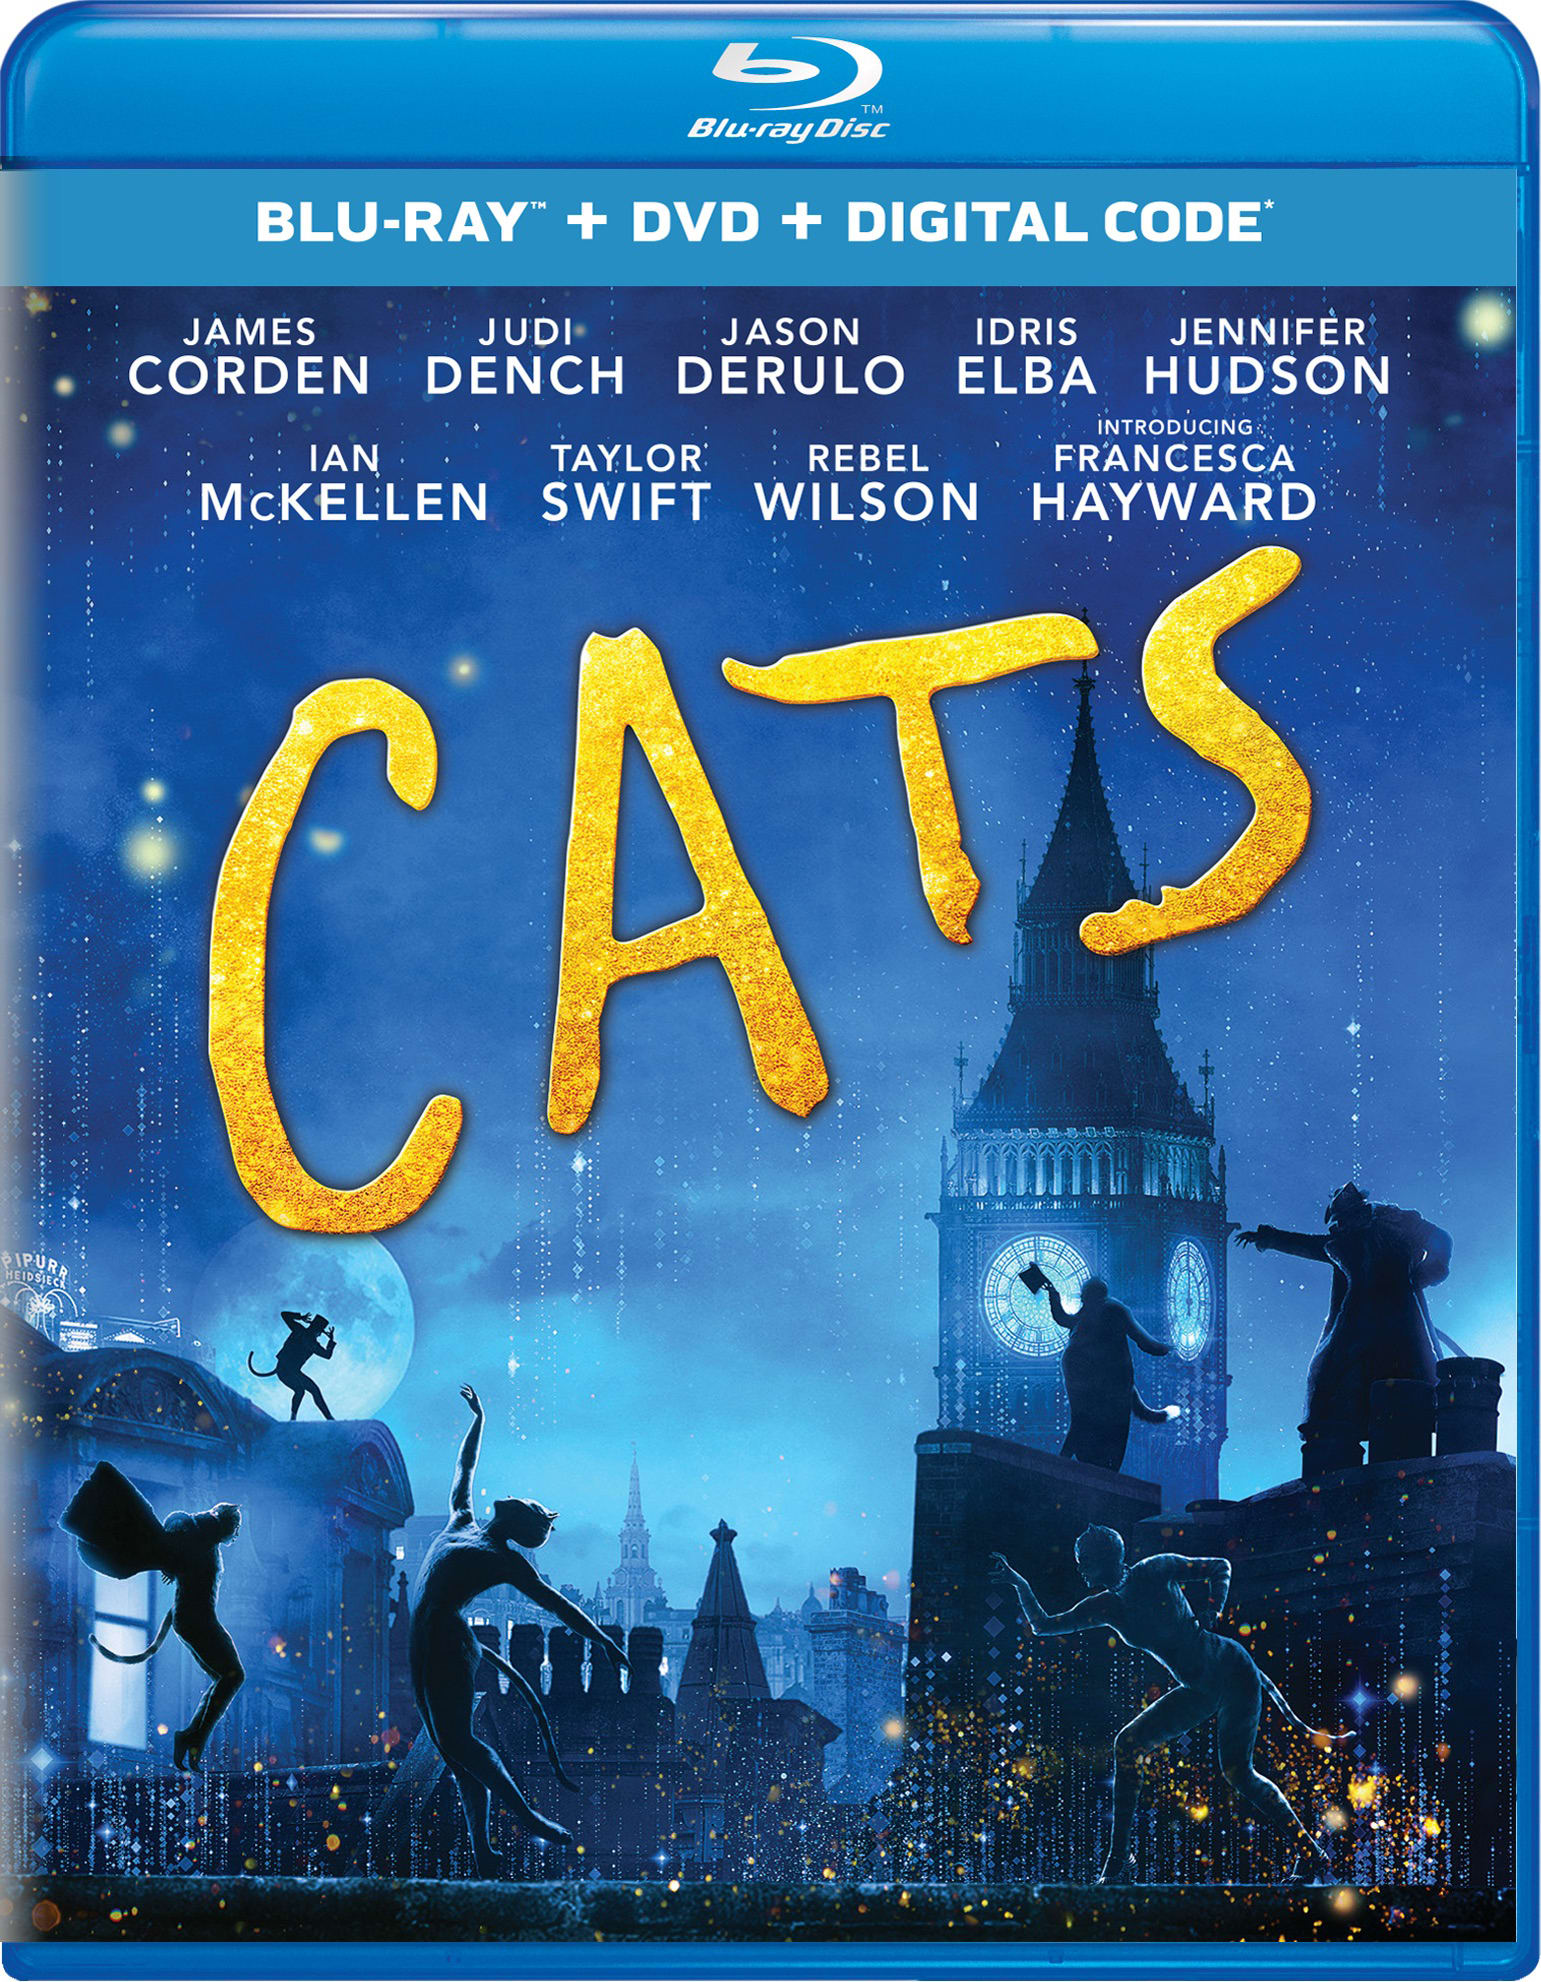 Cats (DVD + Digital) [Blu-ray]